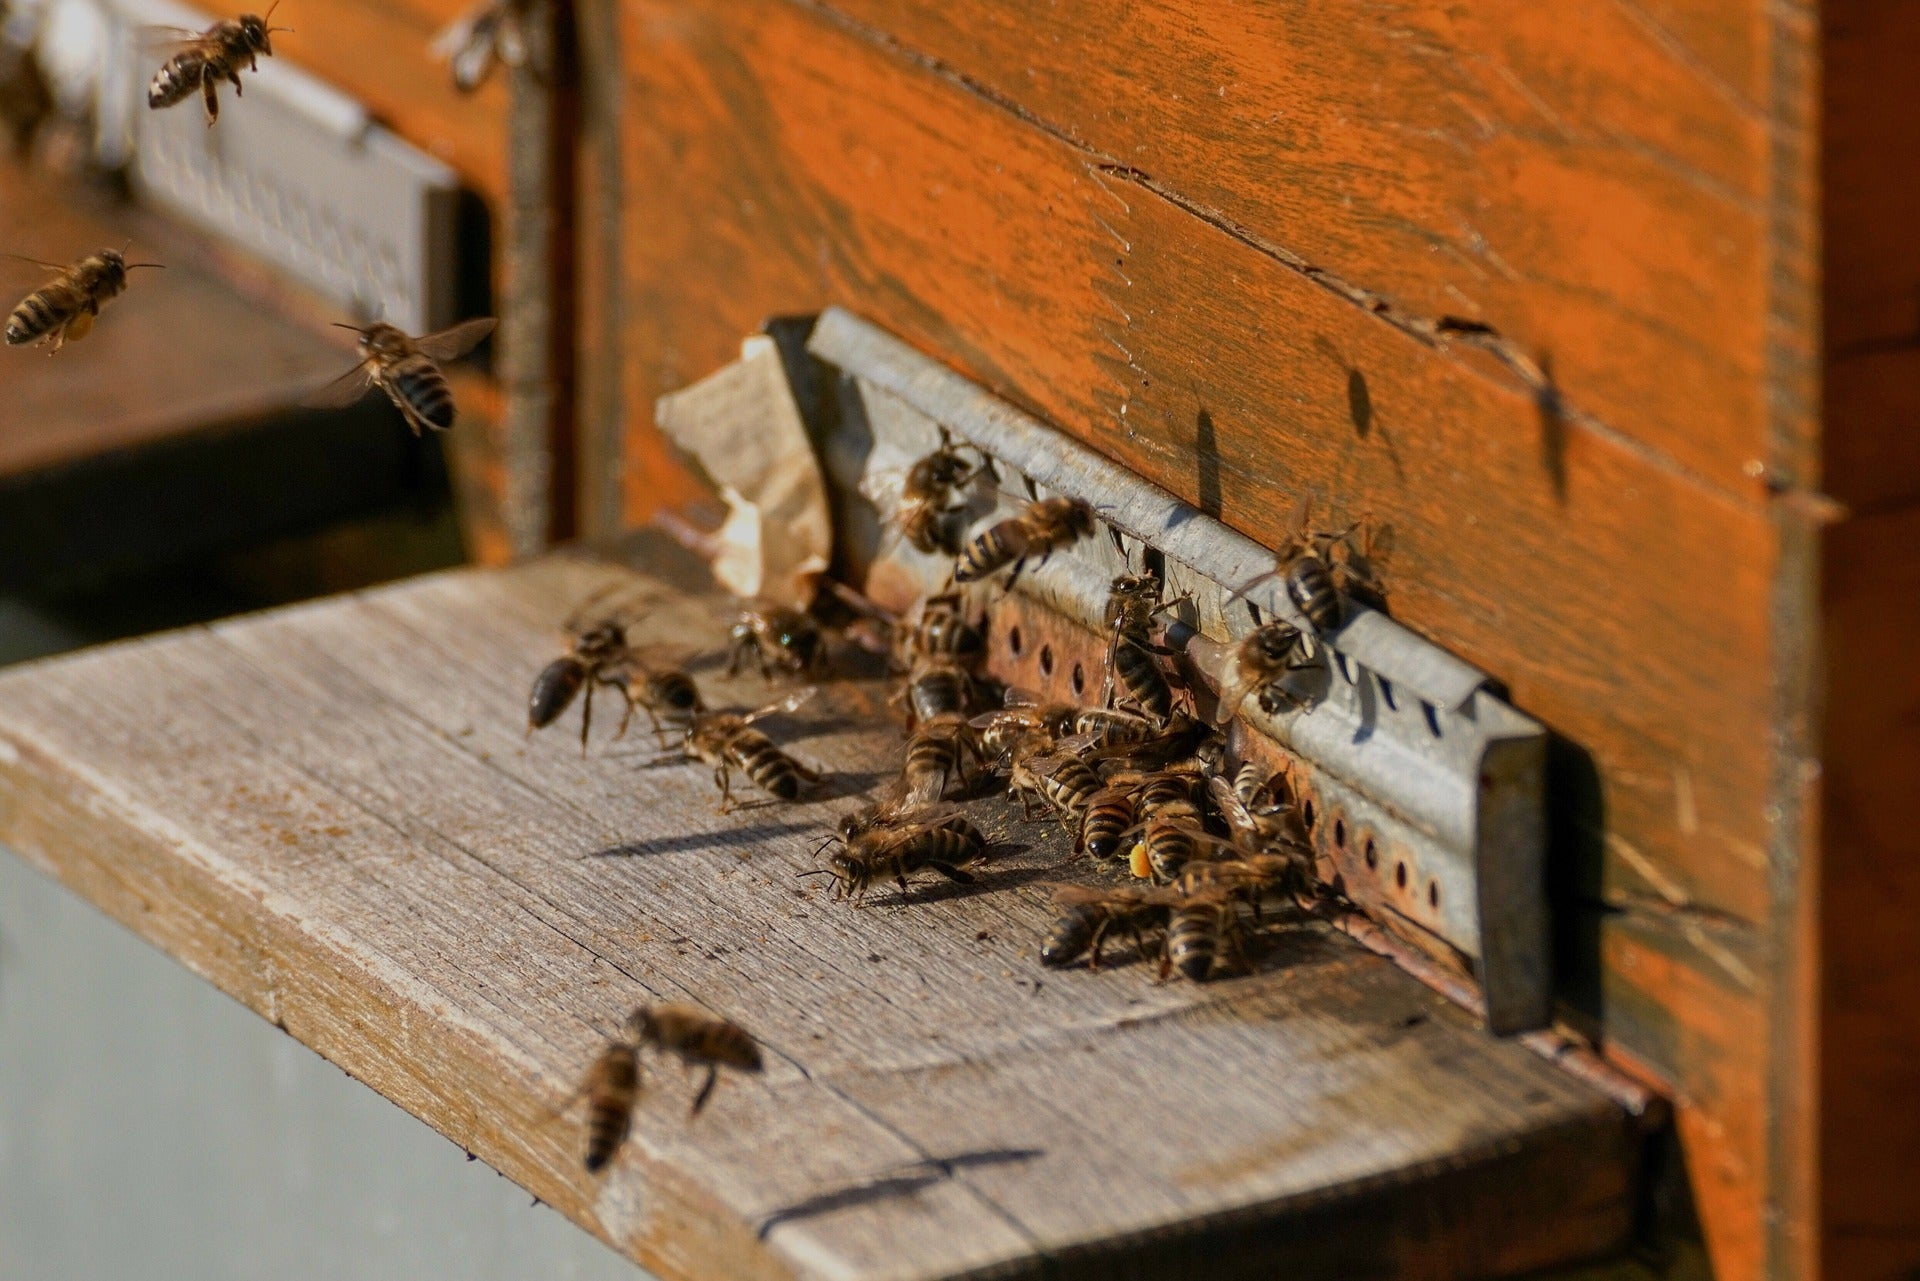 The Bees of Notre Dame Survived the Inferno